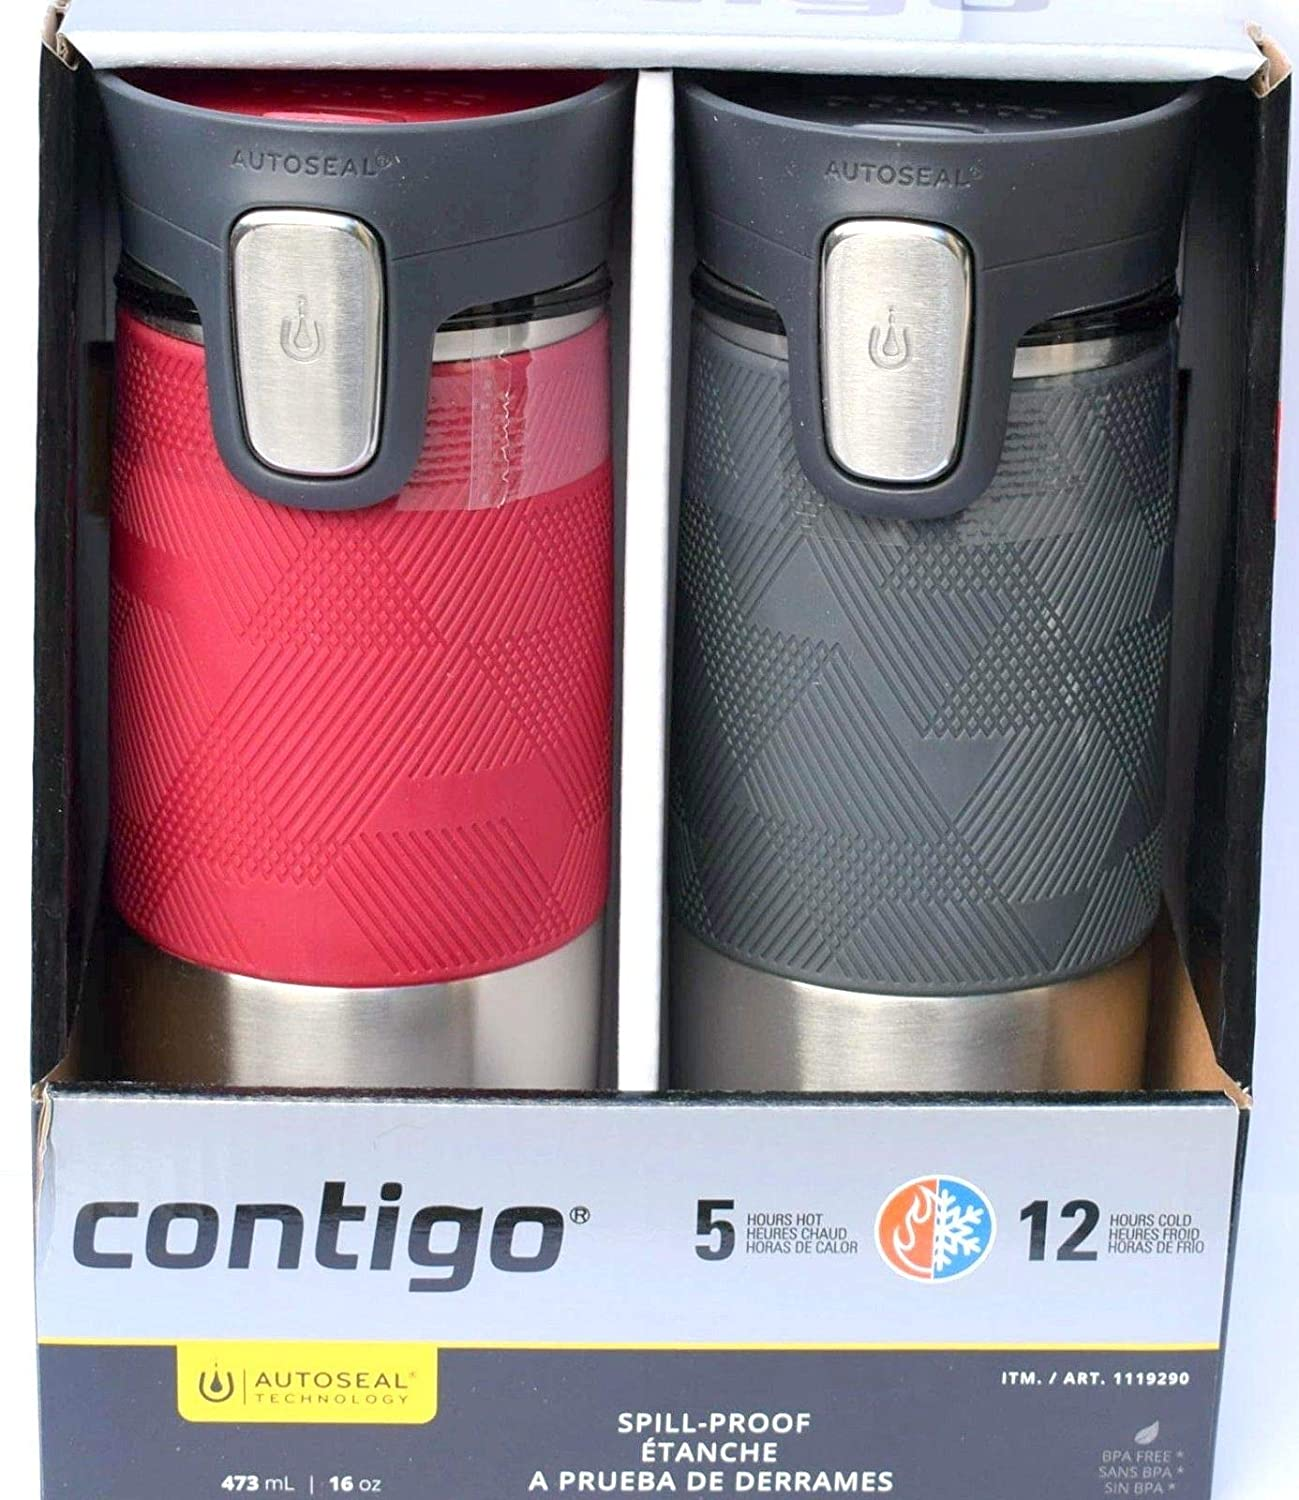 Contigo Autoseal Stainless Steel Spill-Proof Travel Mug, 473mL- Pinot Noir & Gray (2 Pack)